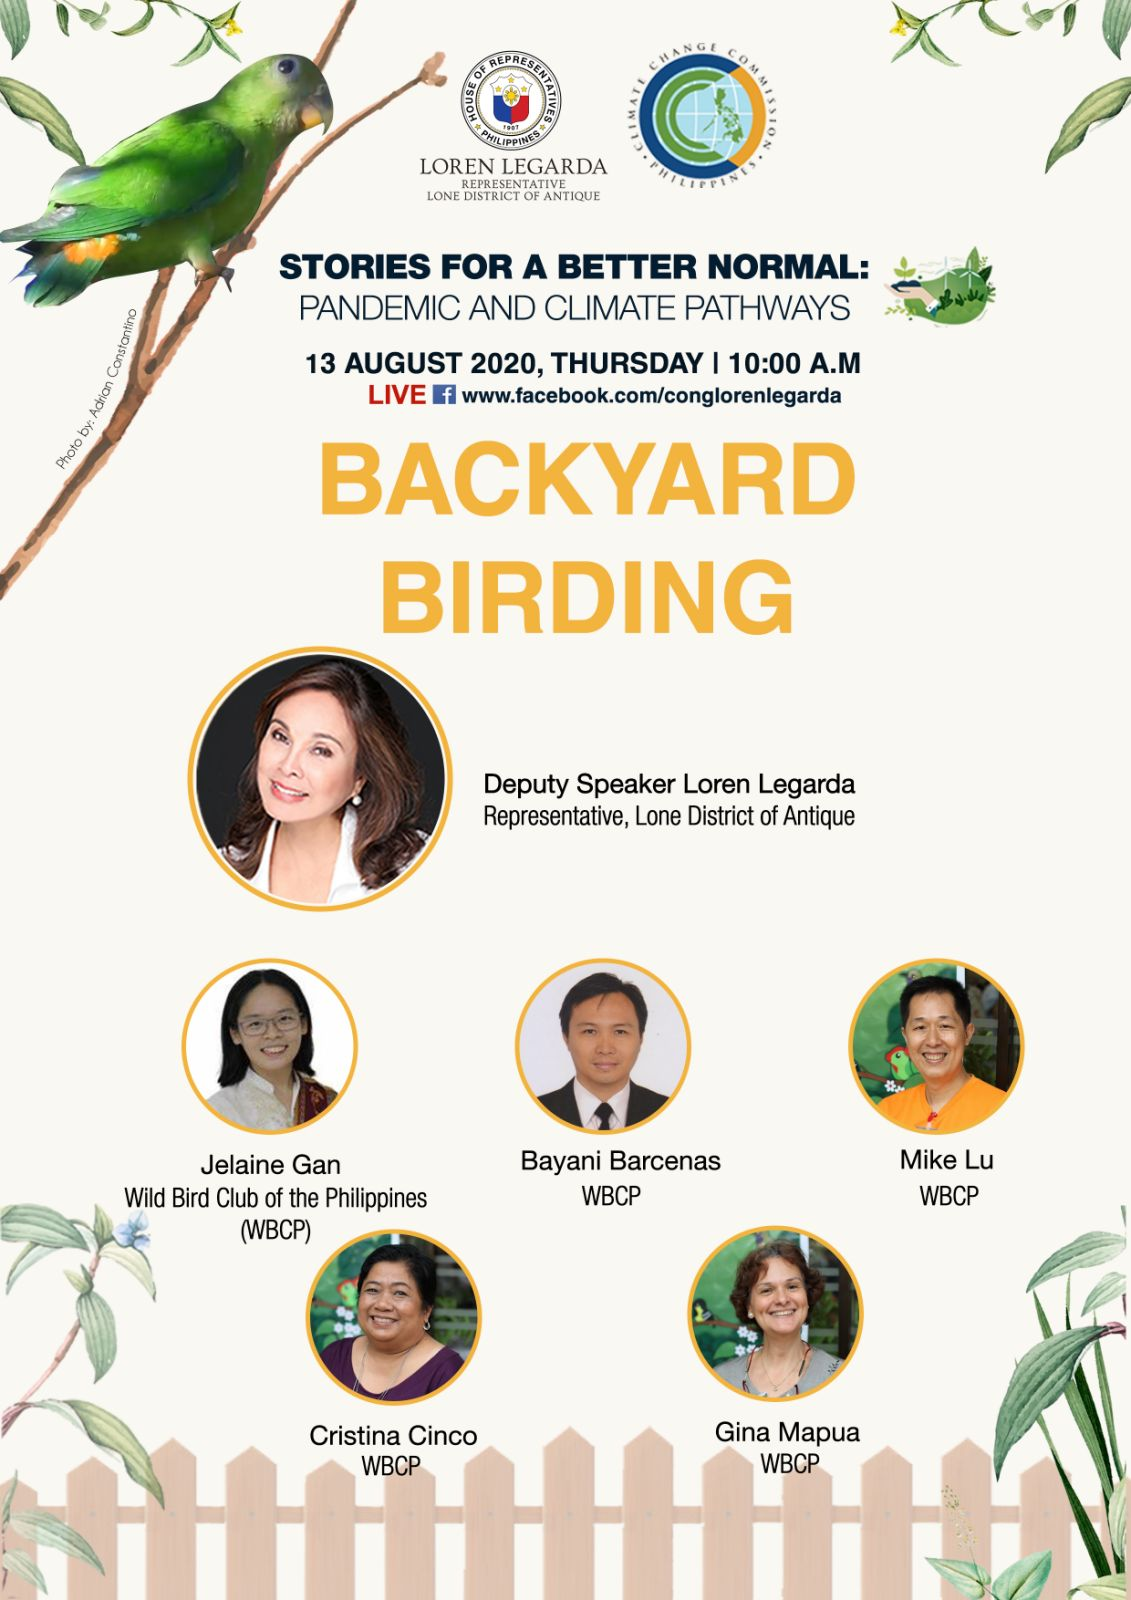 """Backyard Birding in 13th Episode of """"Stories for a Better Normal"""" Series"""